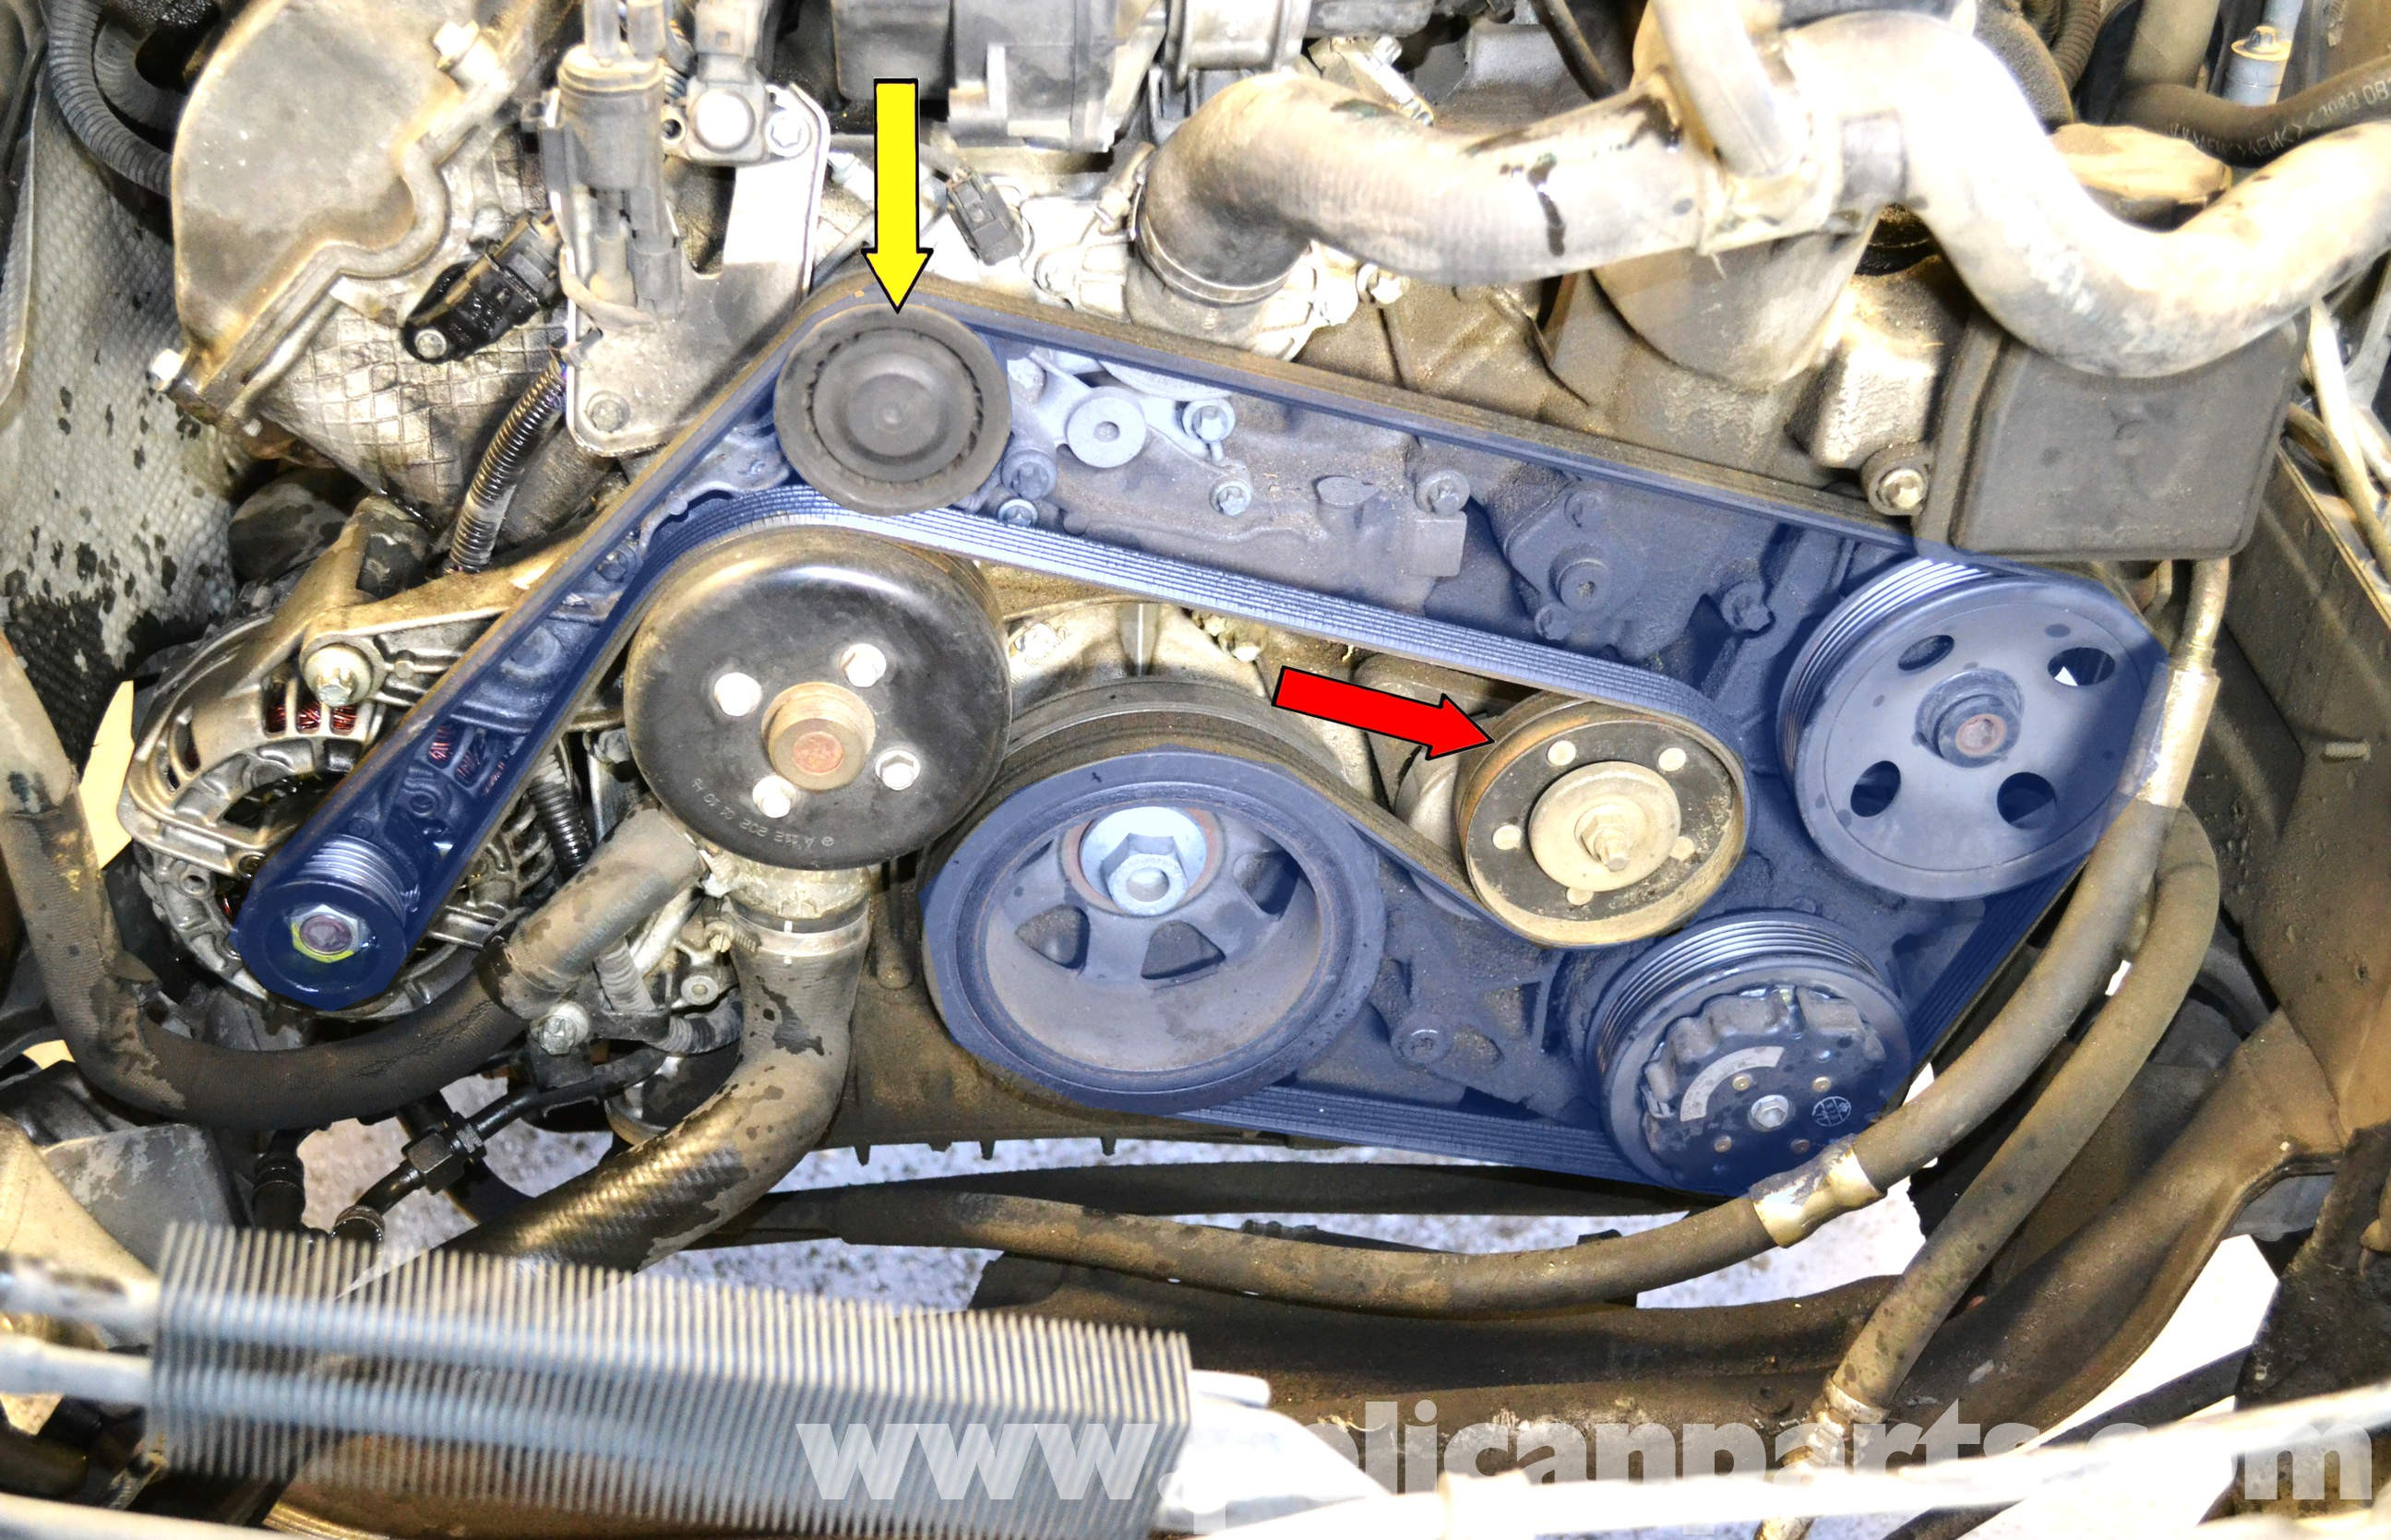 Mercedes S430 Engine Diagram Mercedes Benz W203 Water Pump Replacement 2001 2007 C230 C280